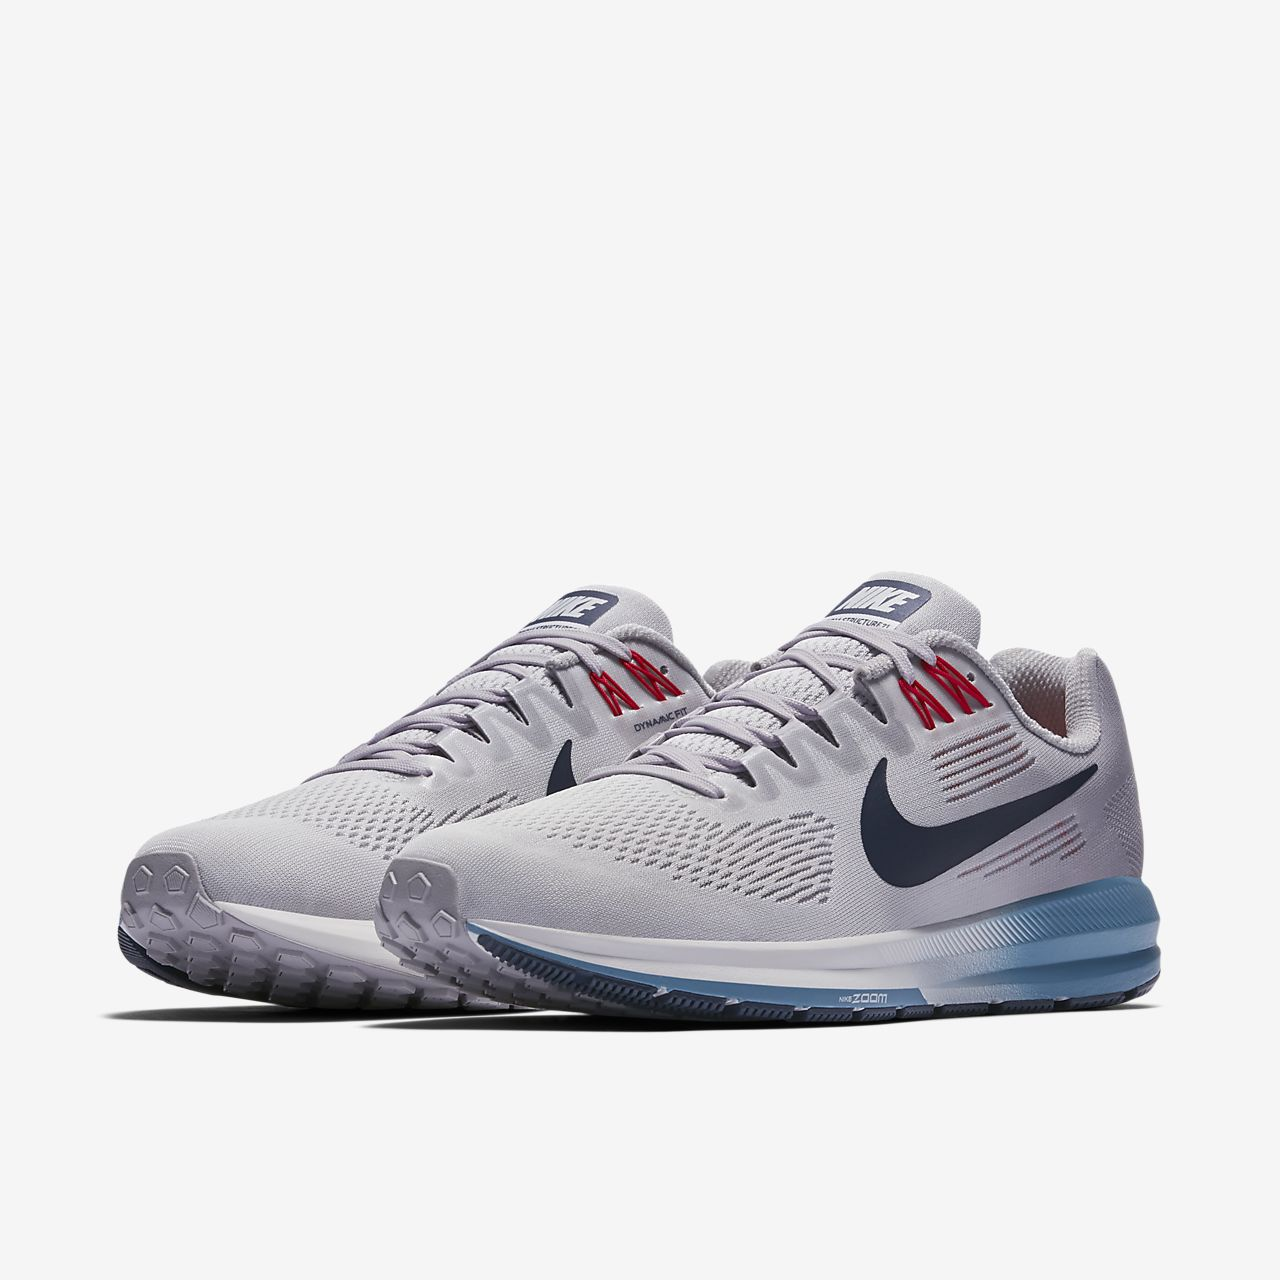 men's nike zoom structure triax + 13 going 30 thriller dance